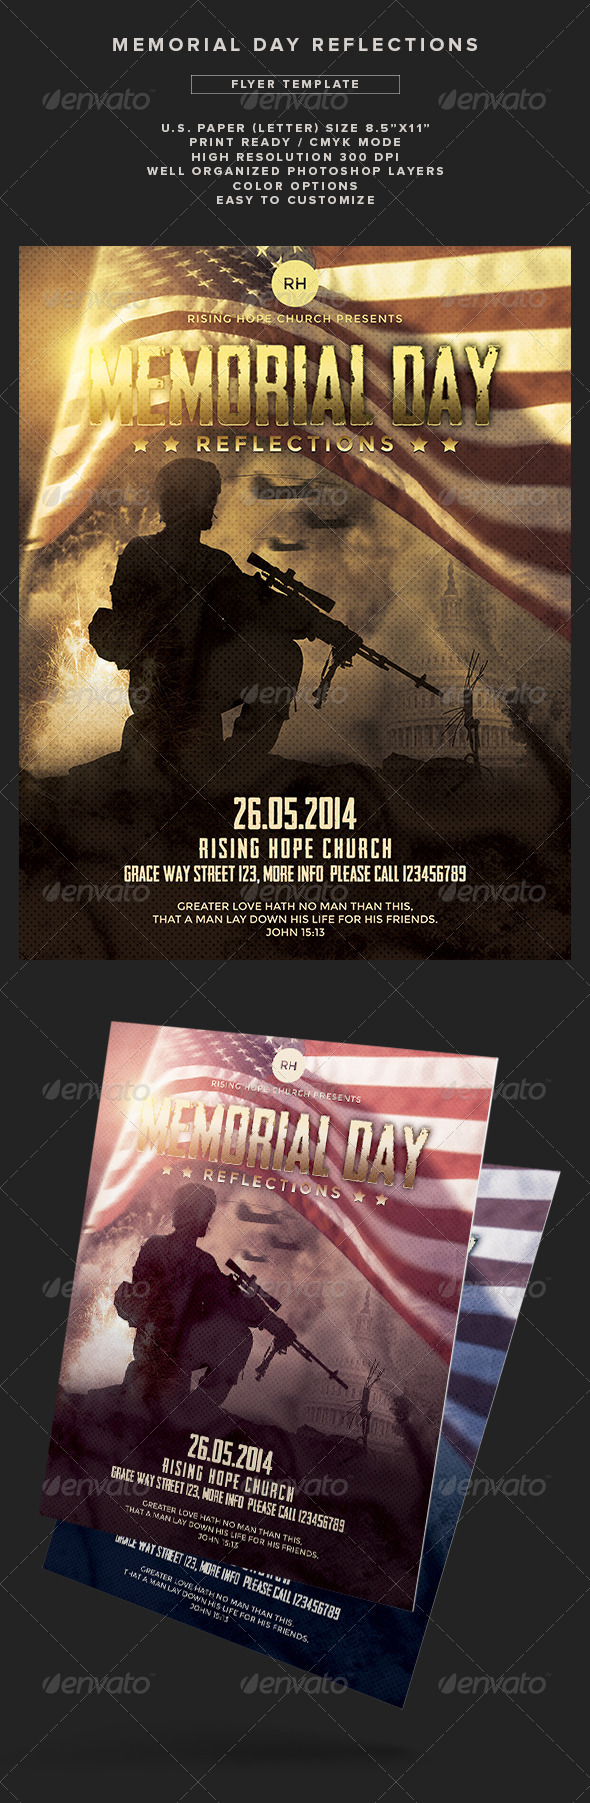 GraphicRiver Memorial Day Reflections Flyer Template 7744355